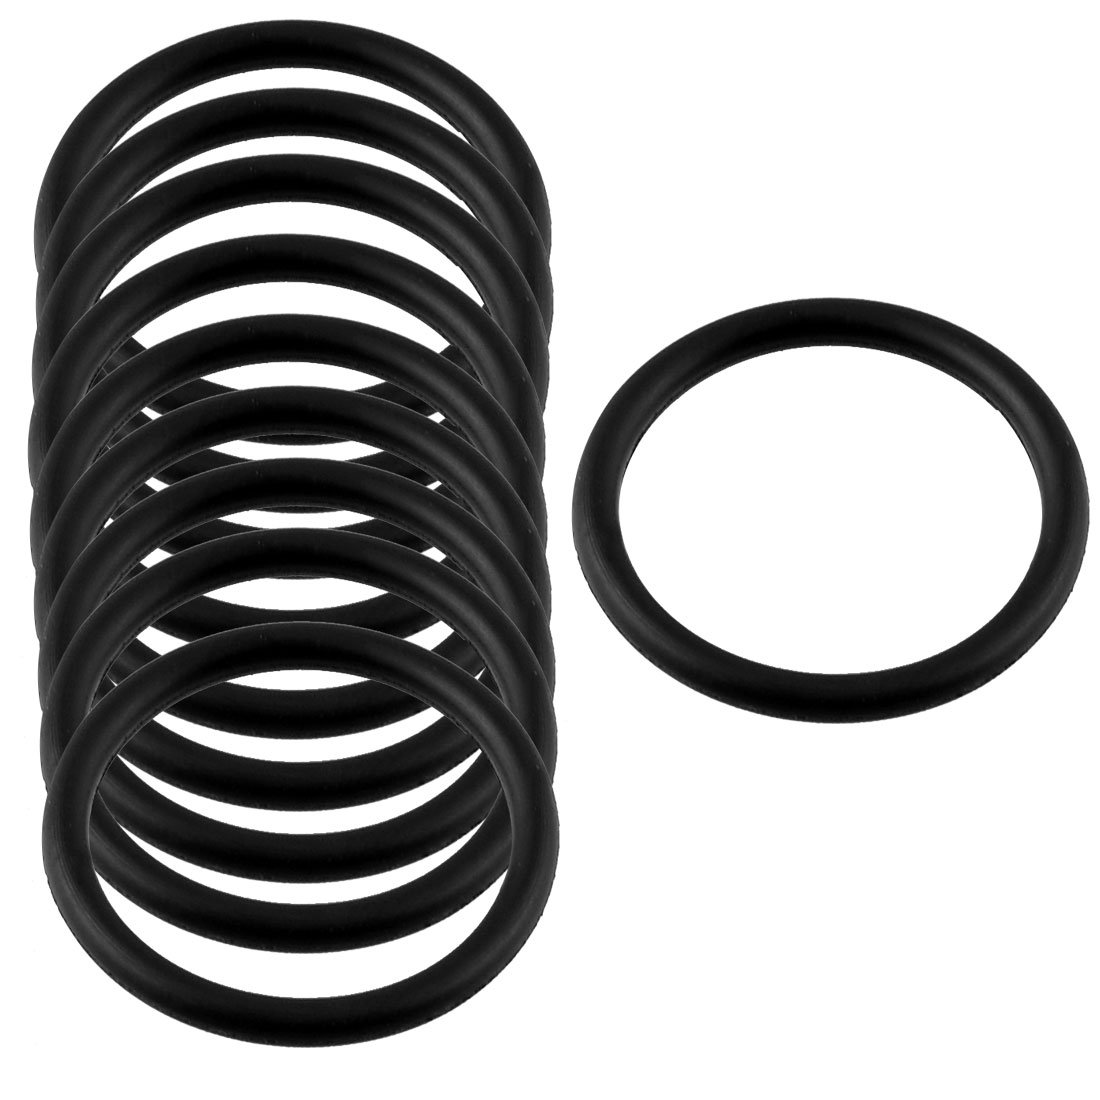 10x New 10 Pcs Black Rubber Oil Seal O Ring Sealing Gasket Washers ...